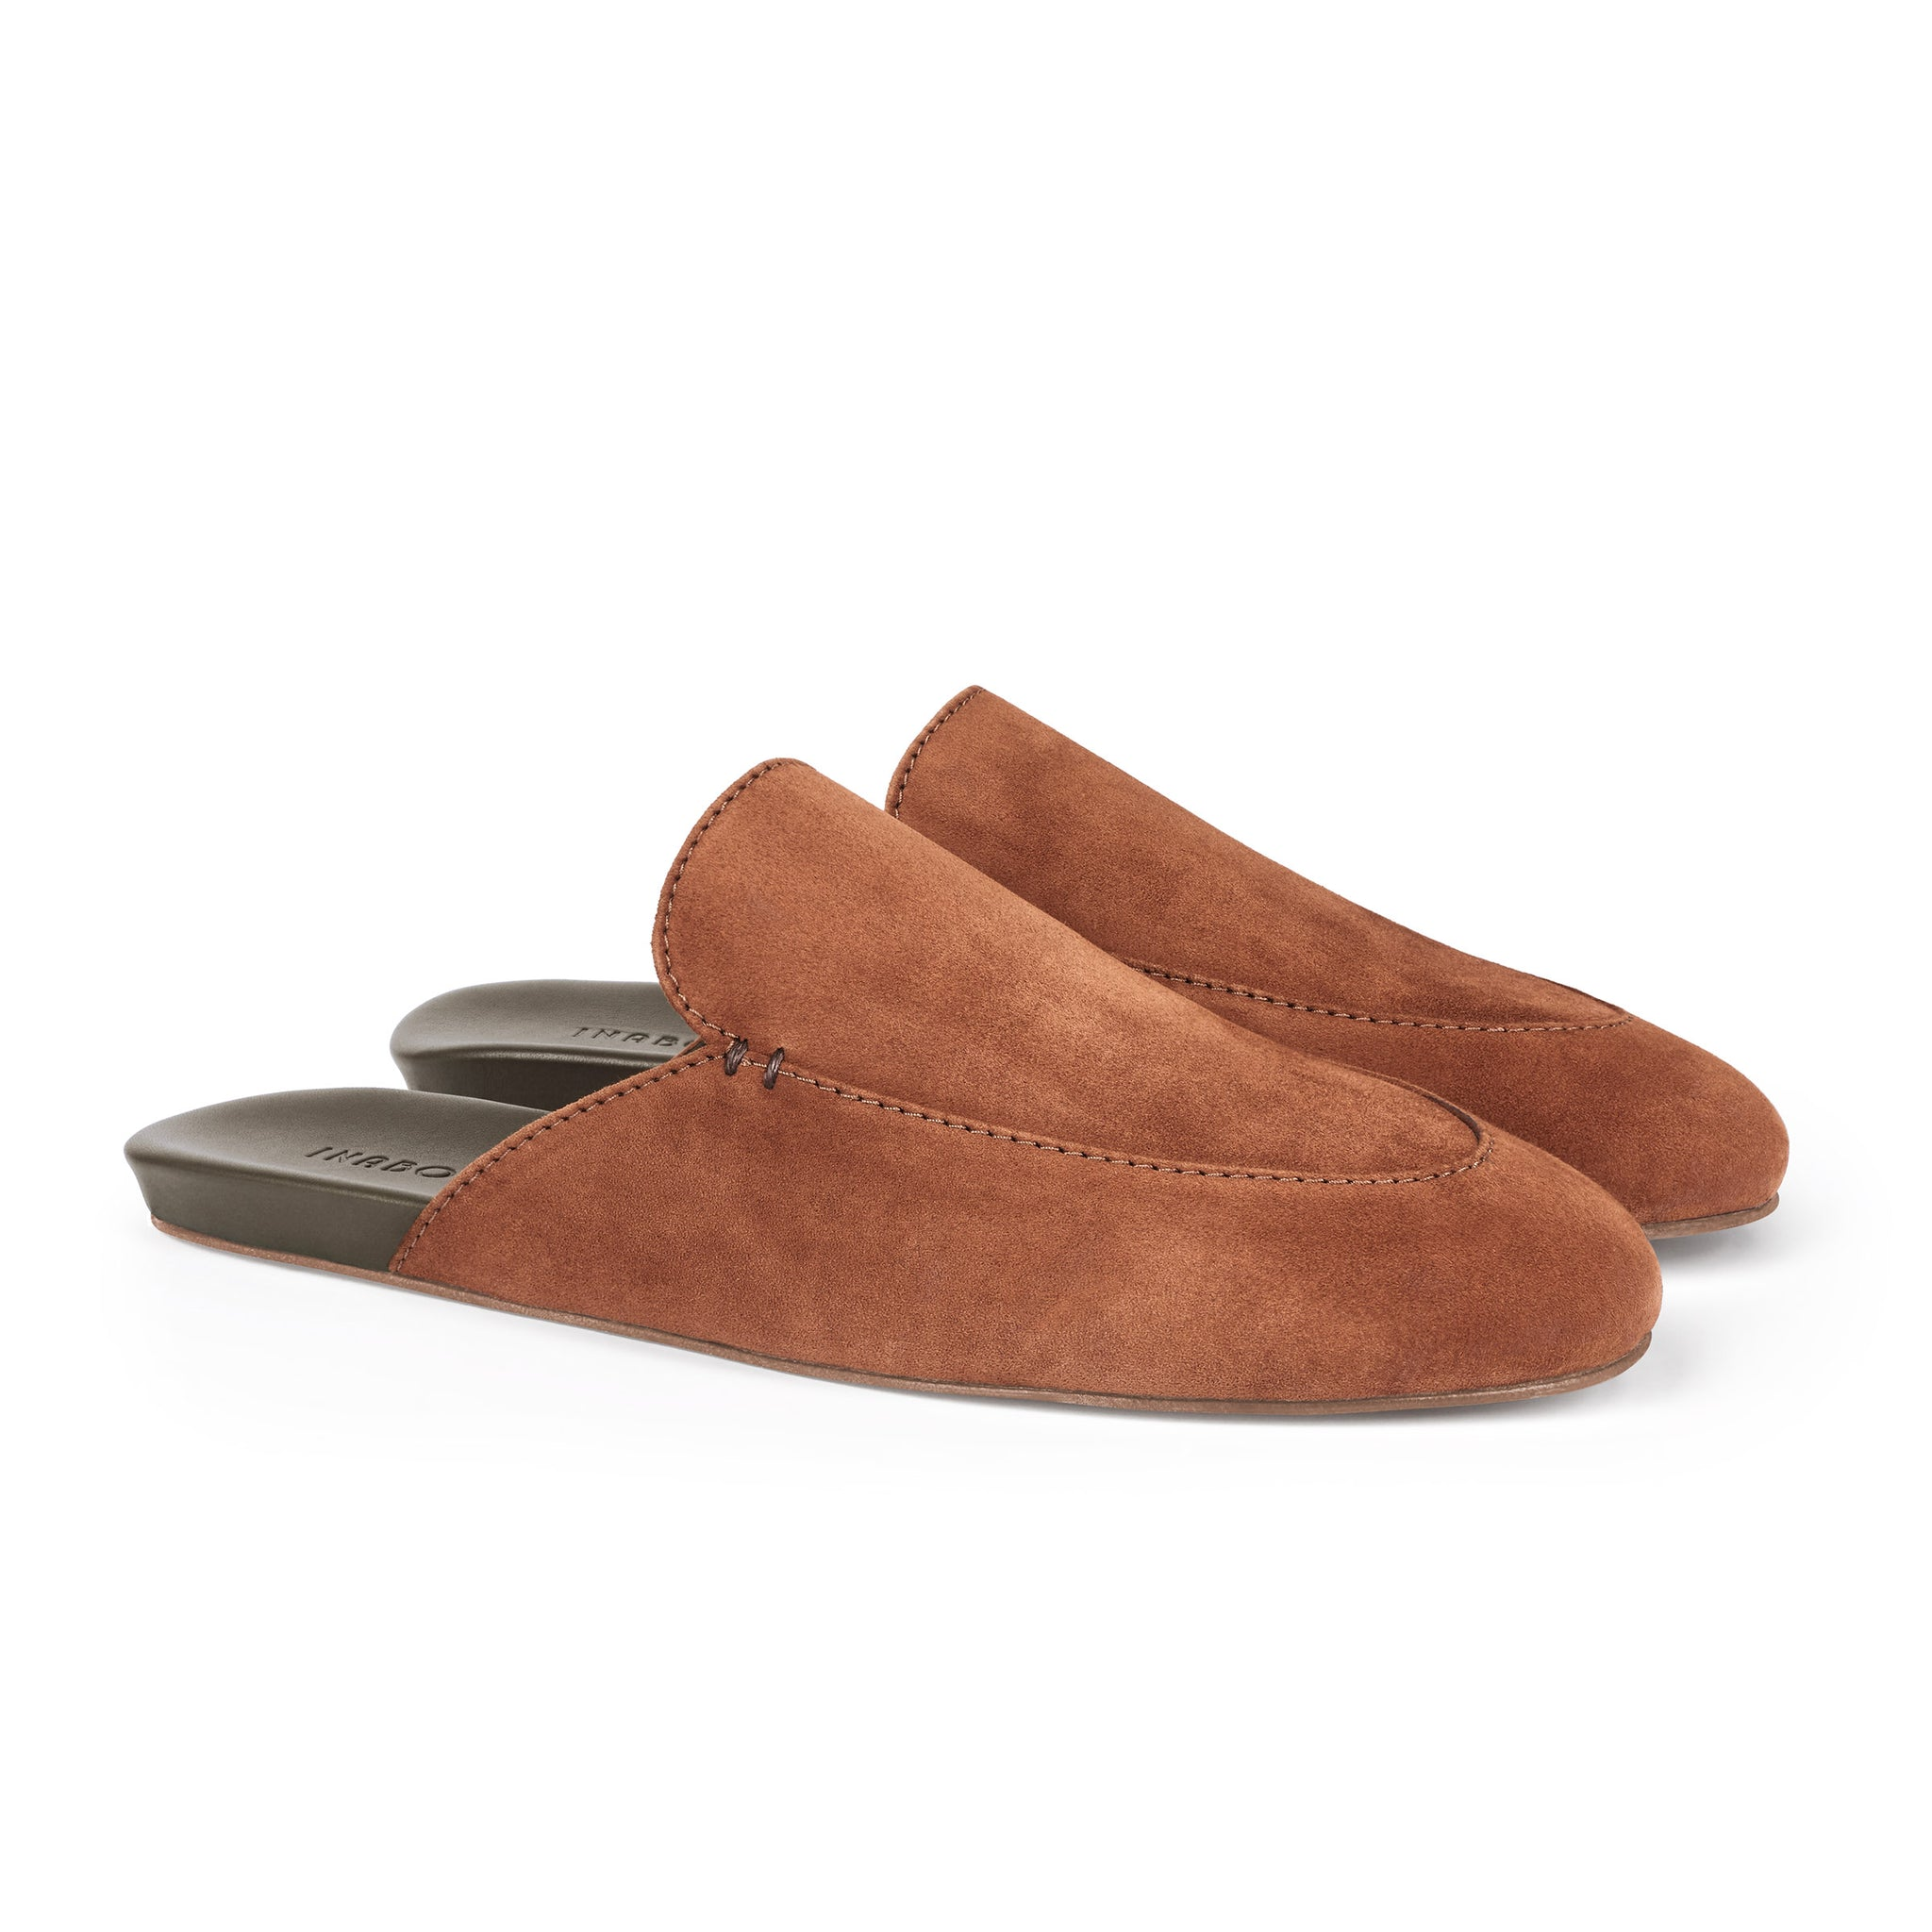 Men's Slowfer Brown Suede